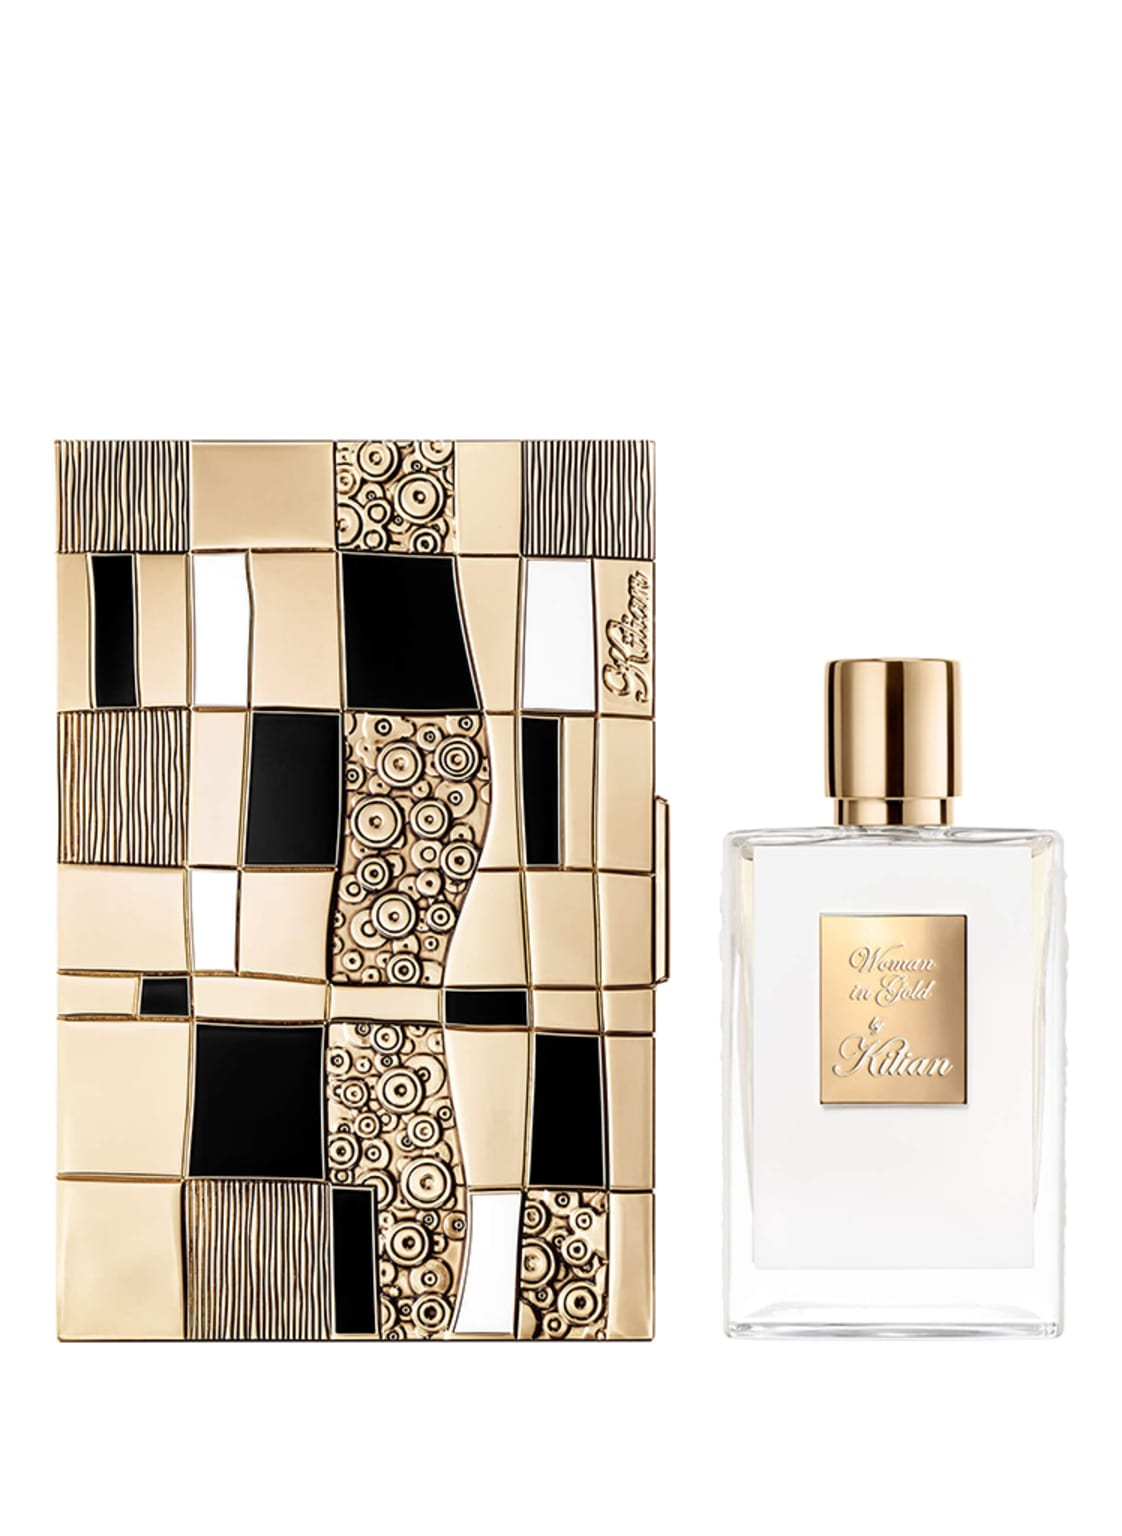 Kilian Woman In Gold Eau de Parfum 50 ml von Kilian